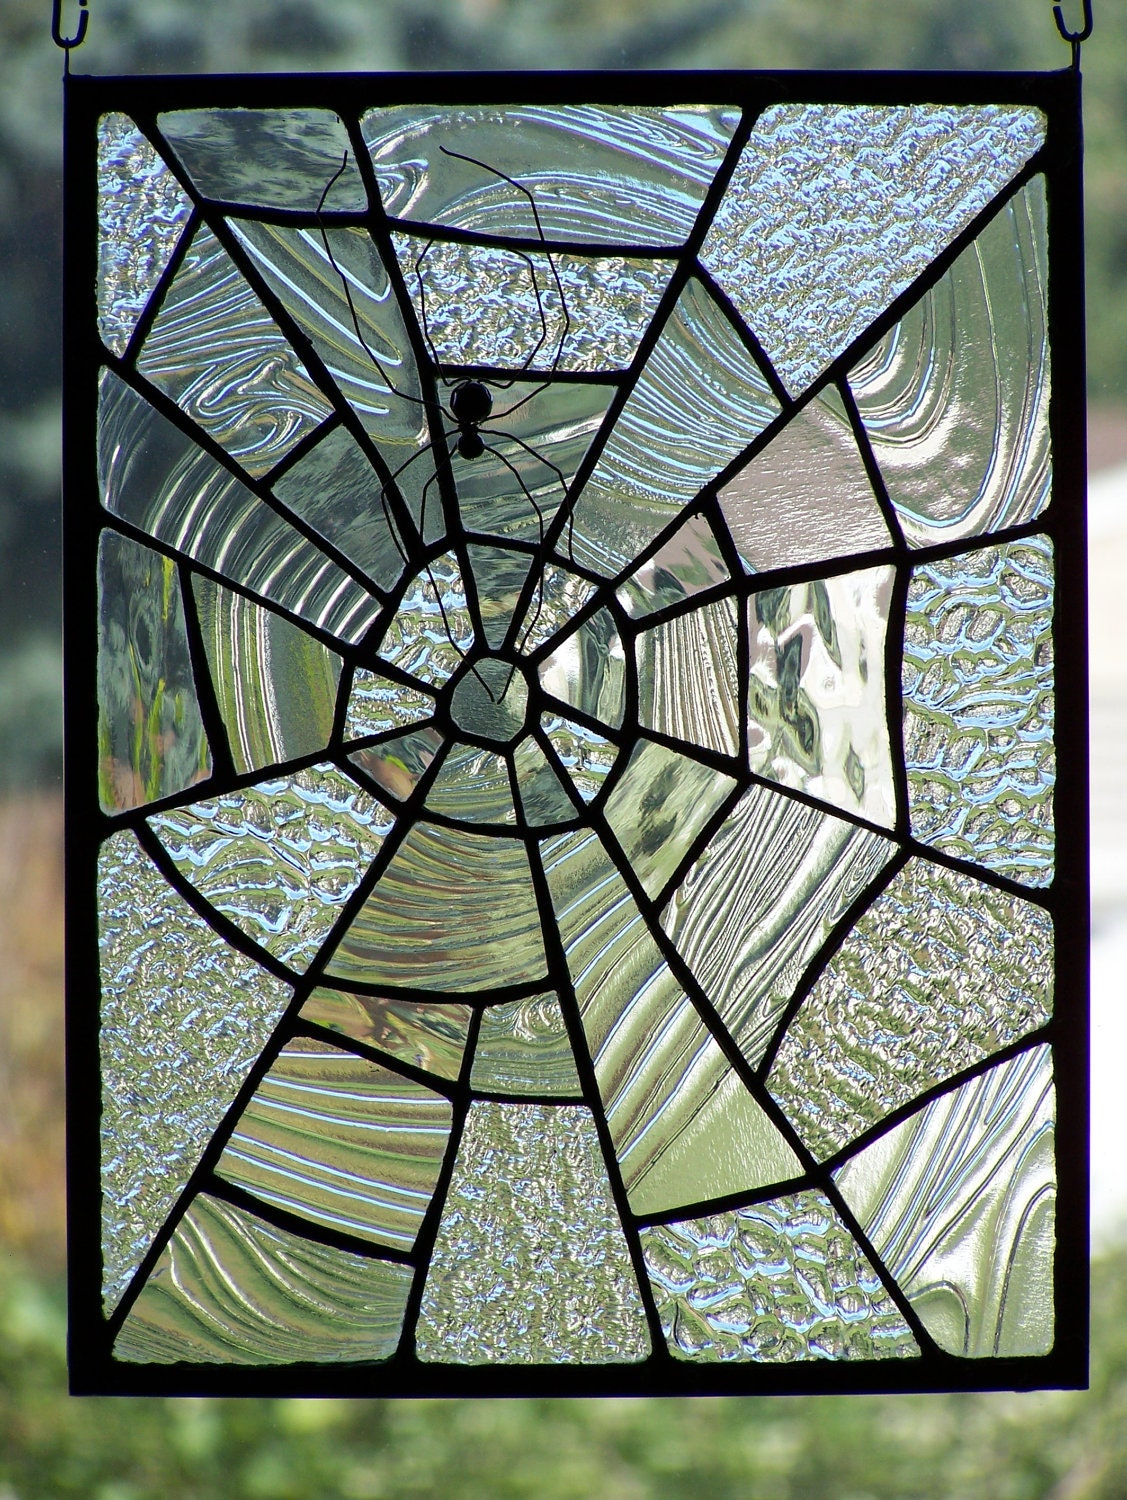 Stained glass textured clear glass spiderweb small by for Textured glass panels